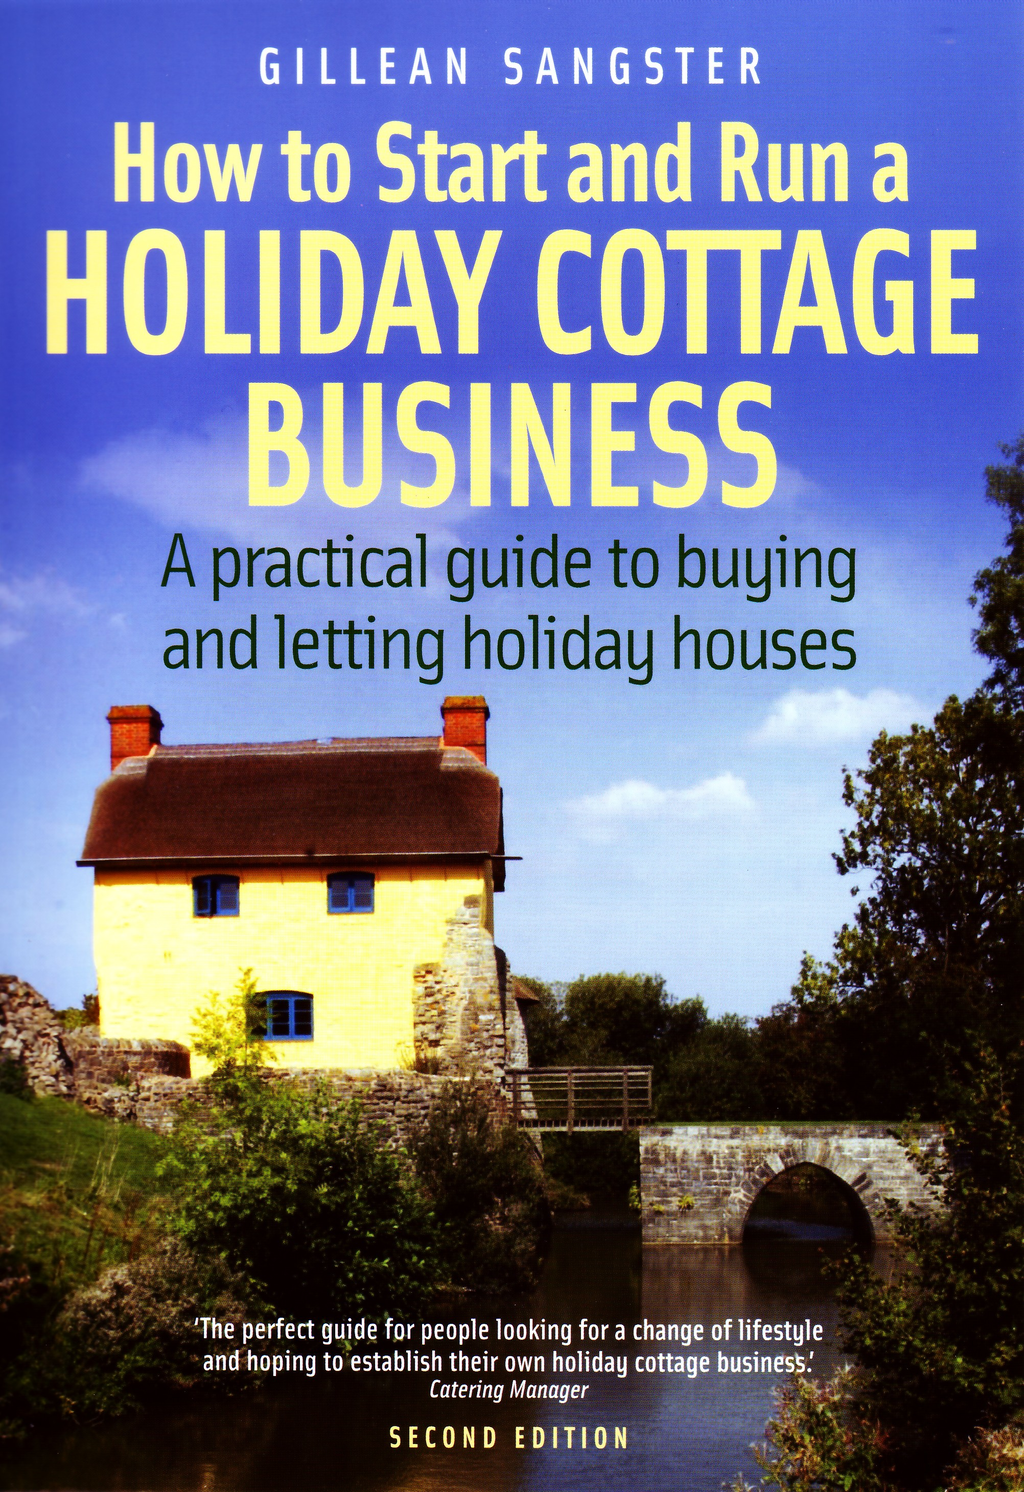 How To Start and Run a Holiday Cottage Business (2nd Edition) A practical guide to buying and letting holiday houses